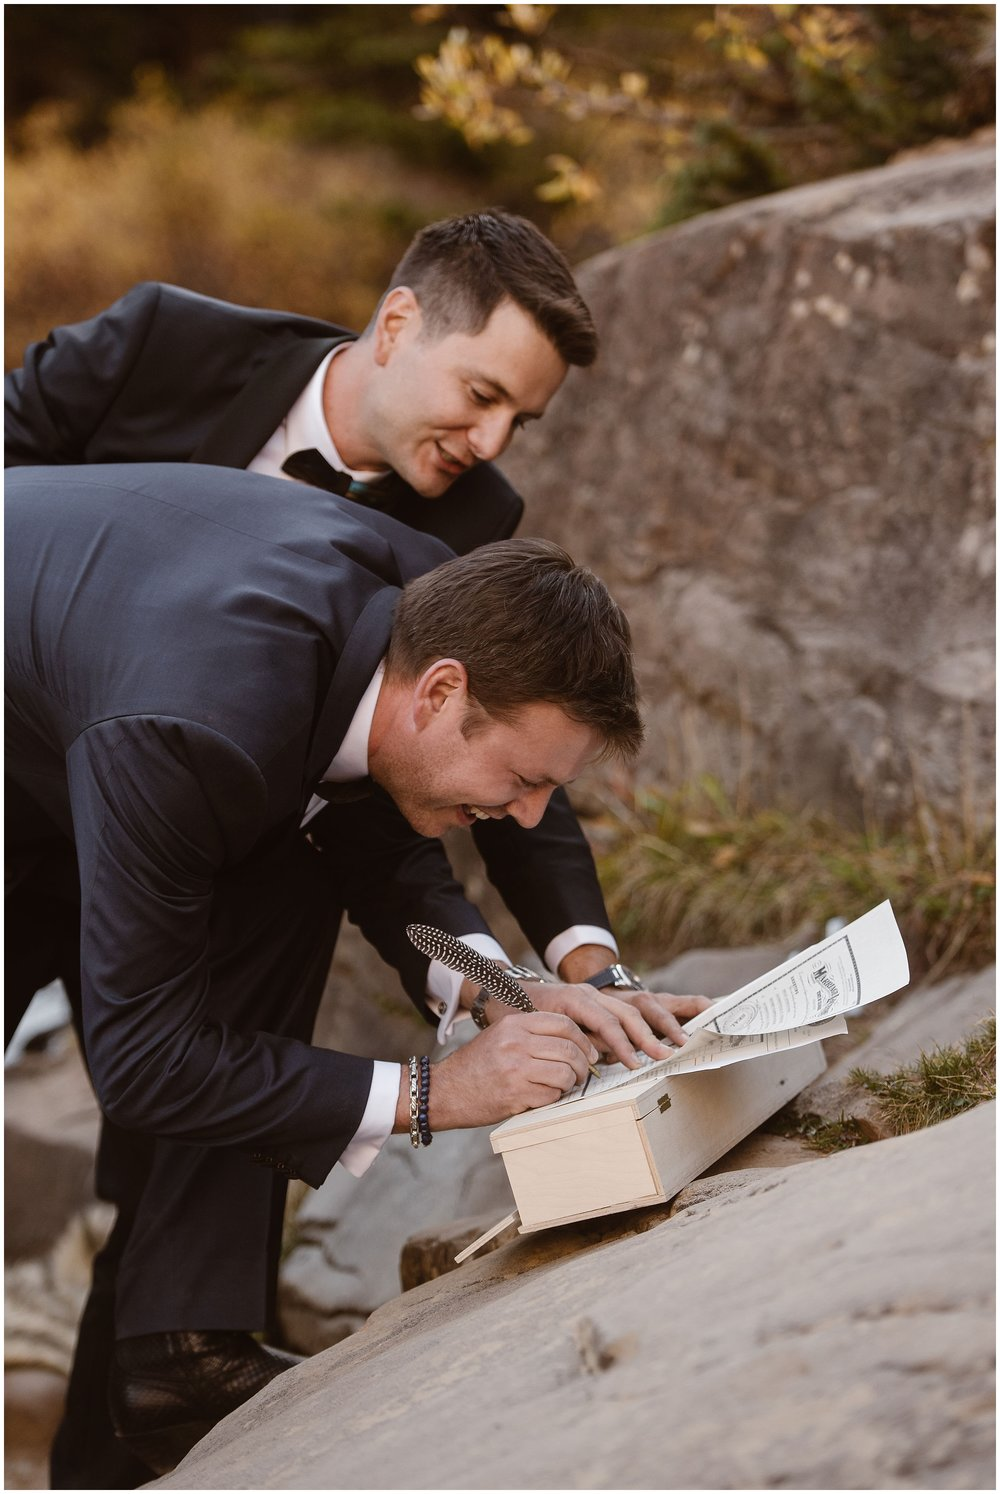 Brian and Ernie lean down to sign their marriage license with their feathered, quill pen. The two smile as they take turns signing this as the final part of their elopement ceremony.